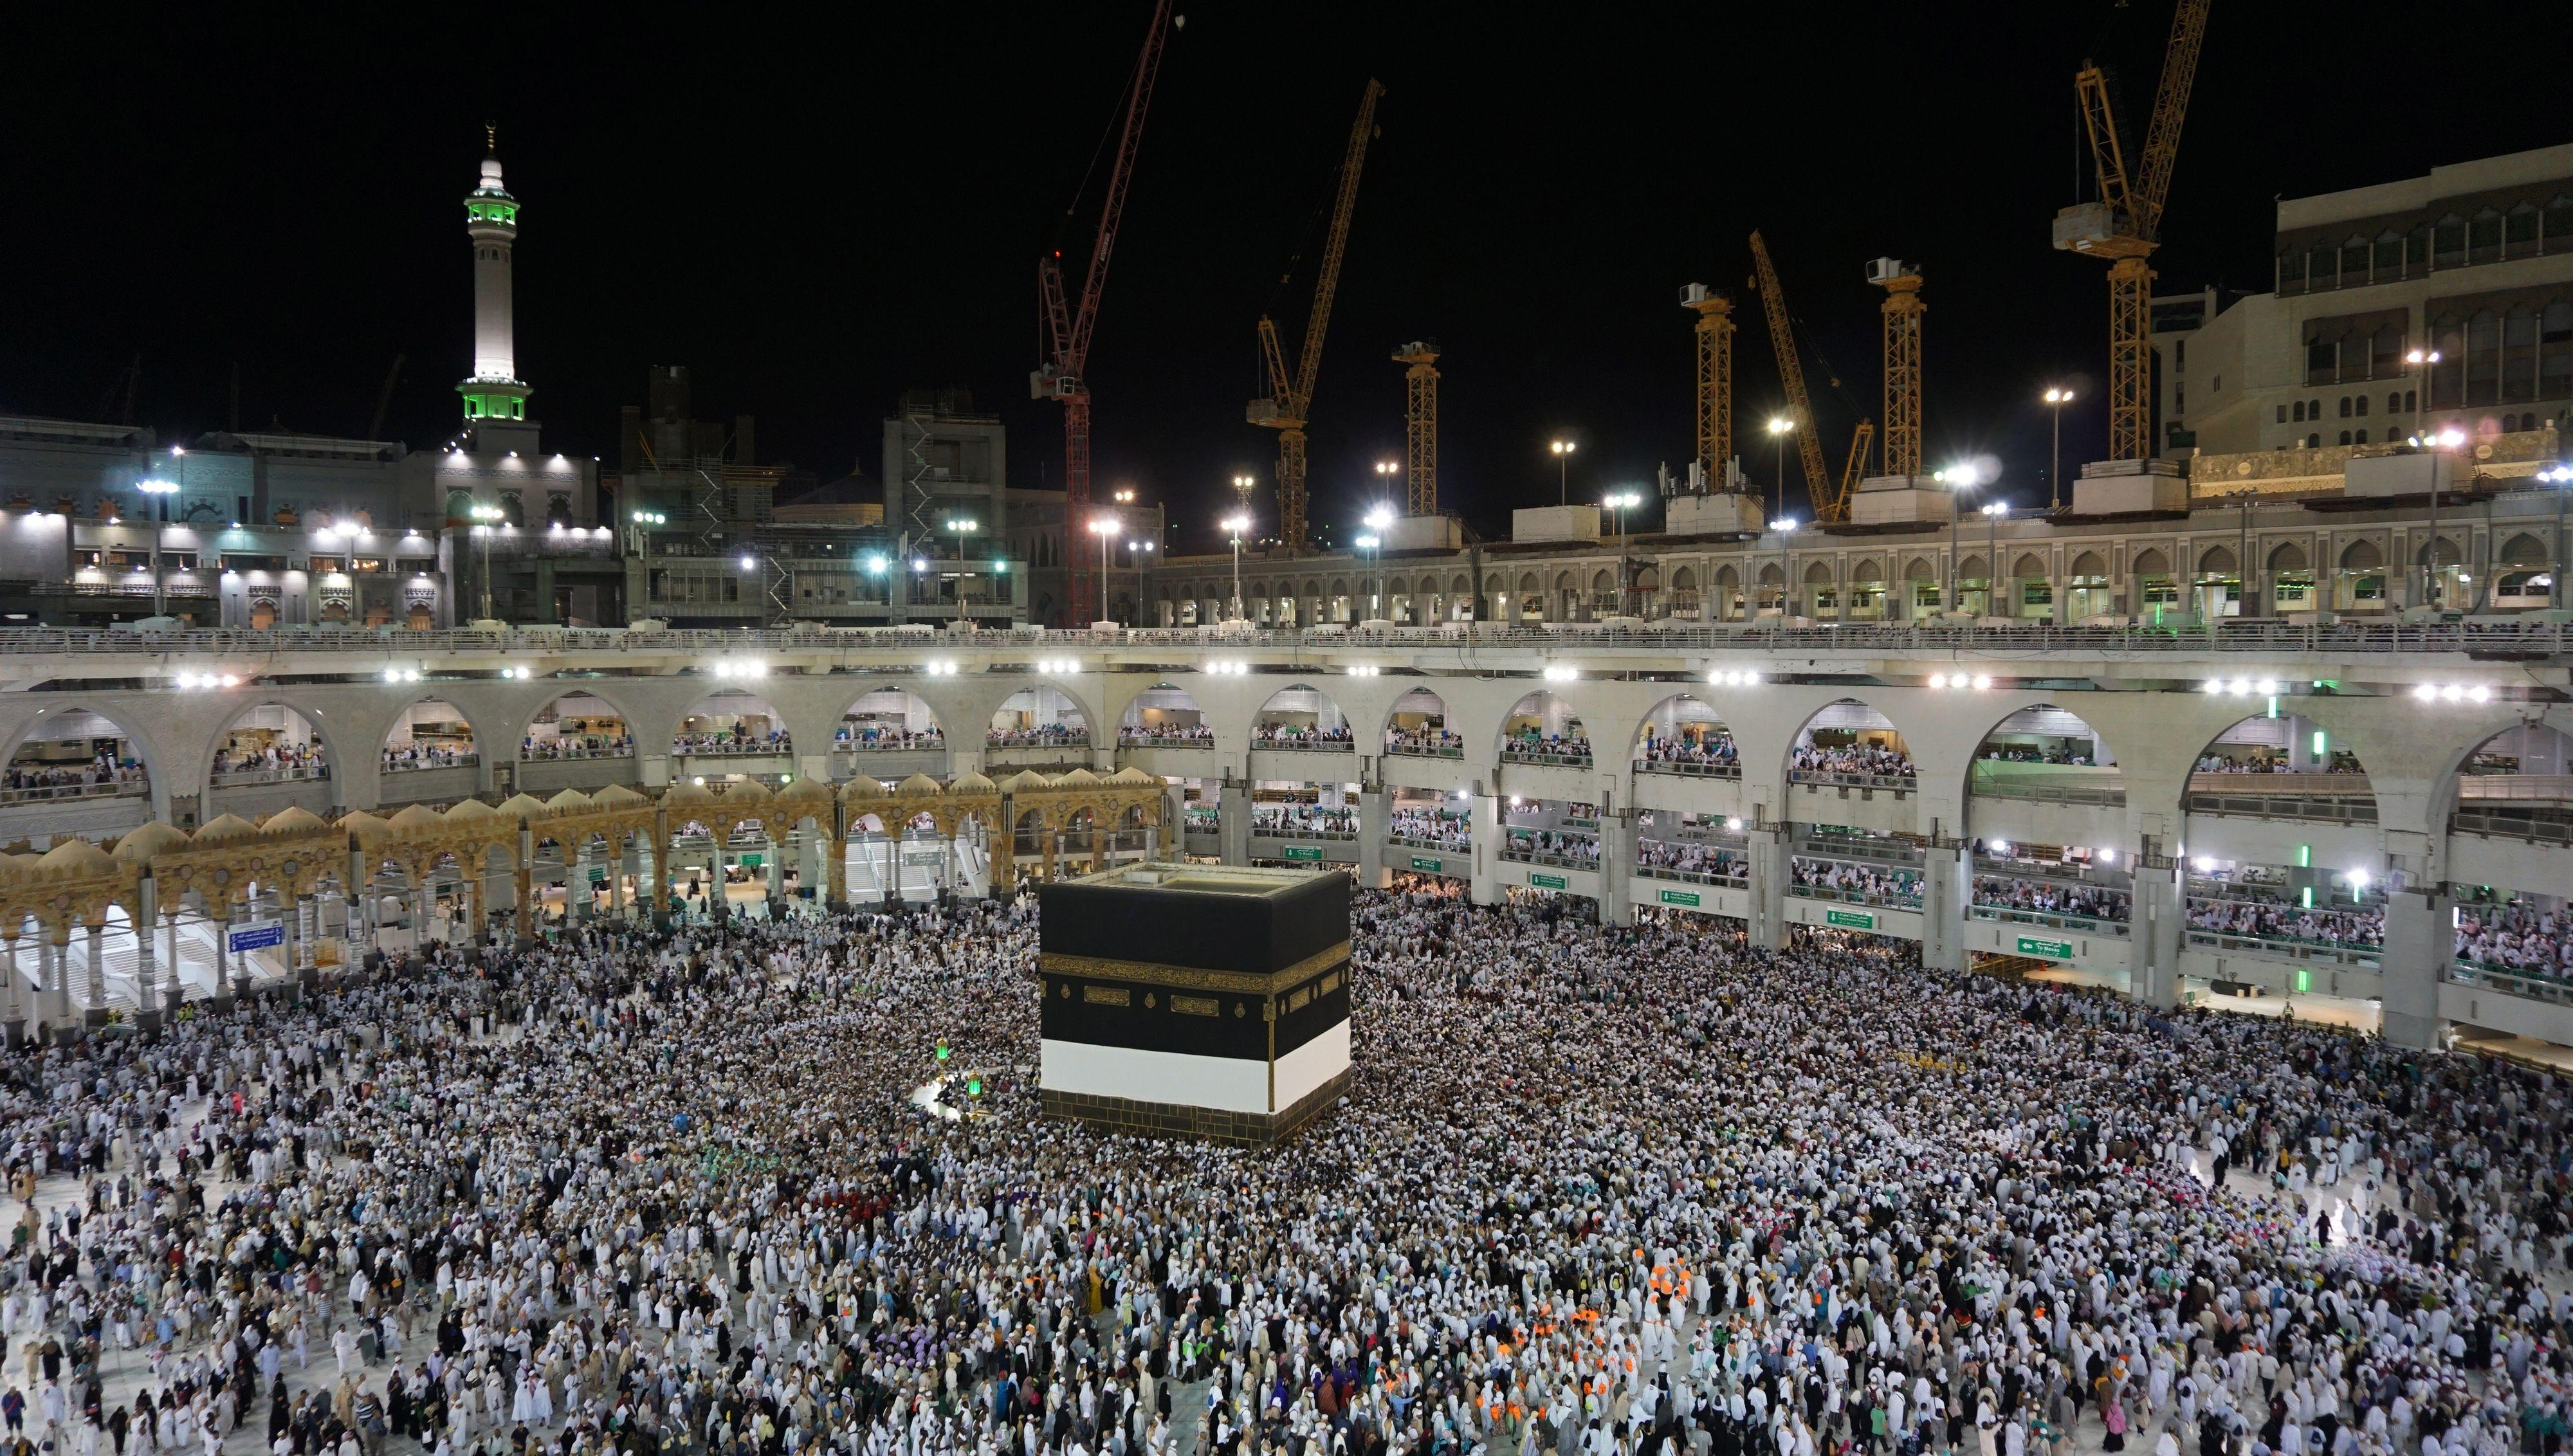 More than 2 million Muslims gather in Mecca as hajj pilgrimage